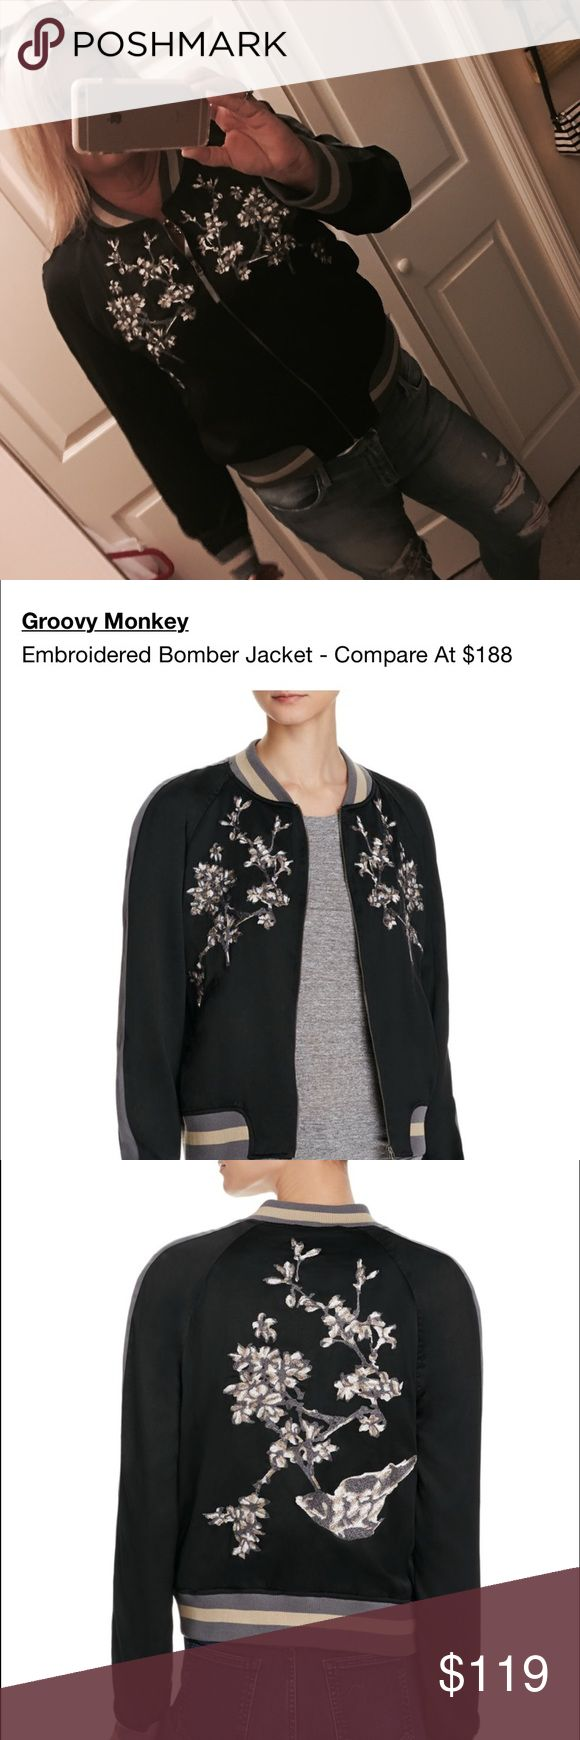 Satin Bomber Jacket New with tags, super cool Asian floral print bomber jacket. XL. Purchased this year, just haven't had an opportunity to wear it. Groovy Monkey Jackets & Coats